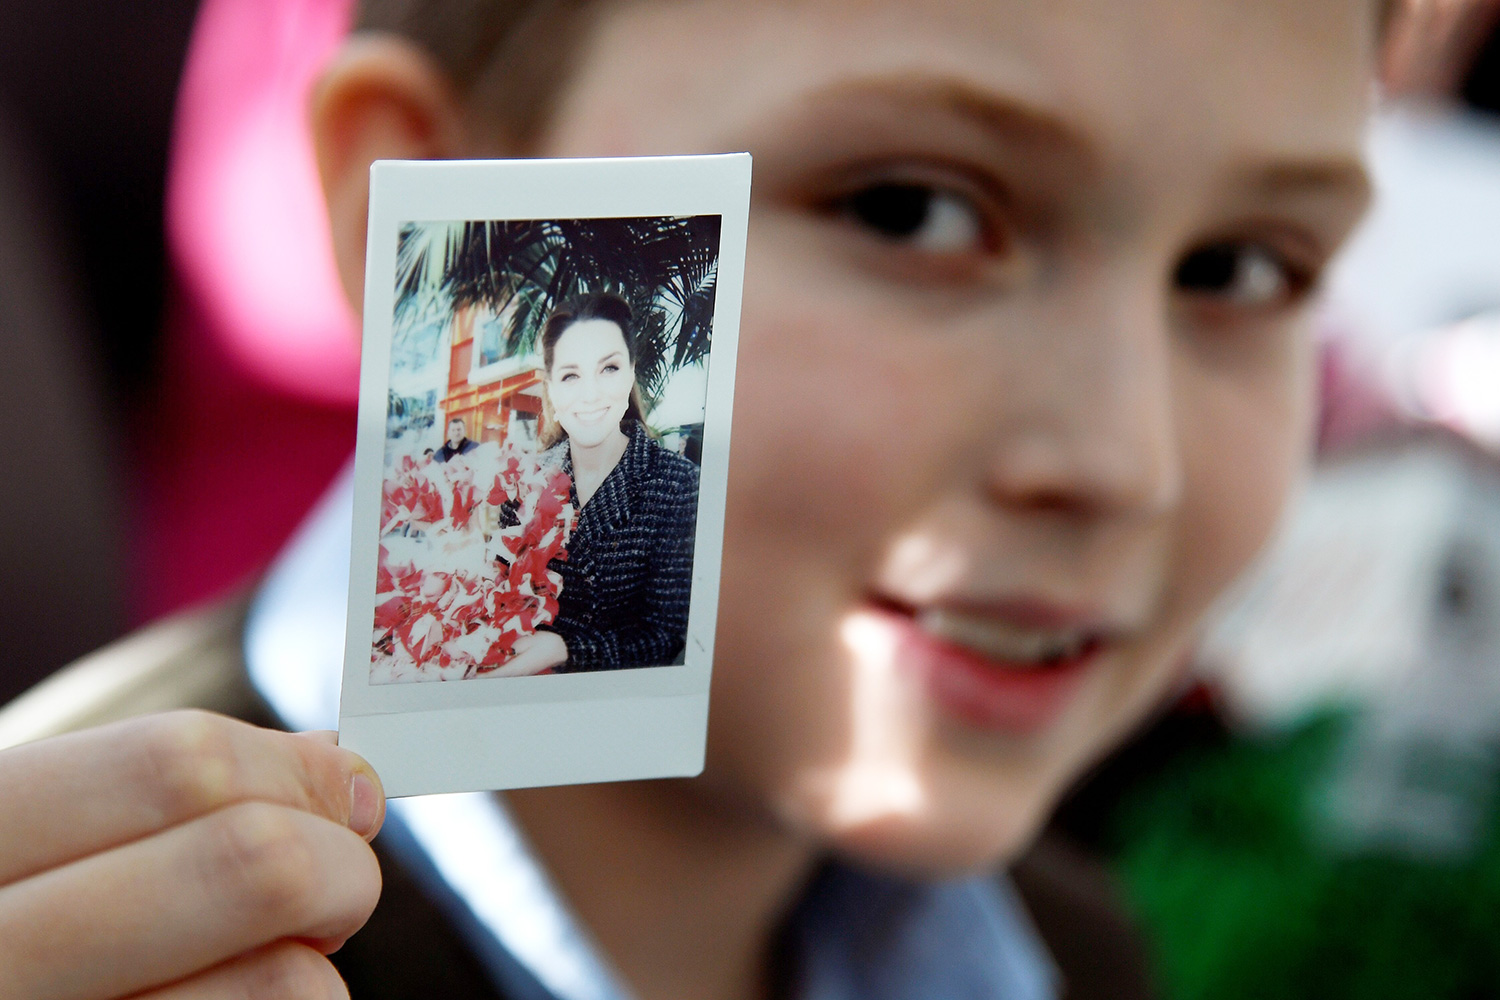 Luke Wheeler-Waddison, 10, holds up a polaroid photograph of Britain's Catherine, Duchess of Cambridge which he took during her visit to the Evelina London Childrens Hospital in London on January 28, 2020 to join a creative workshop run by the National Portrait Gallerys Hospital Programme